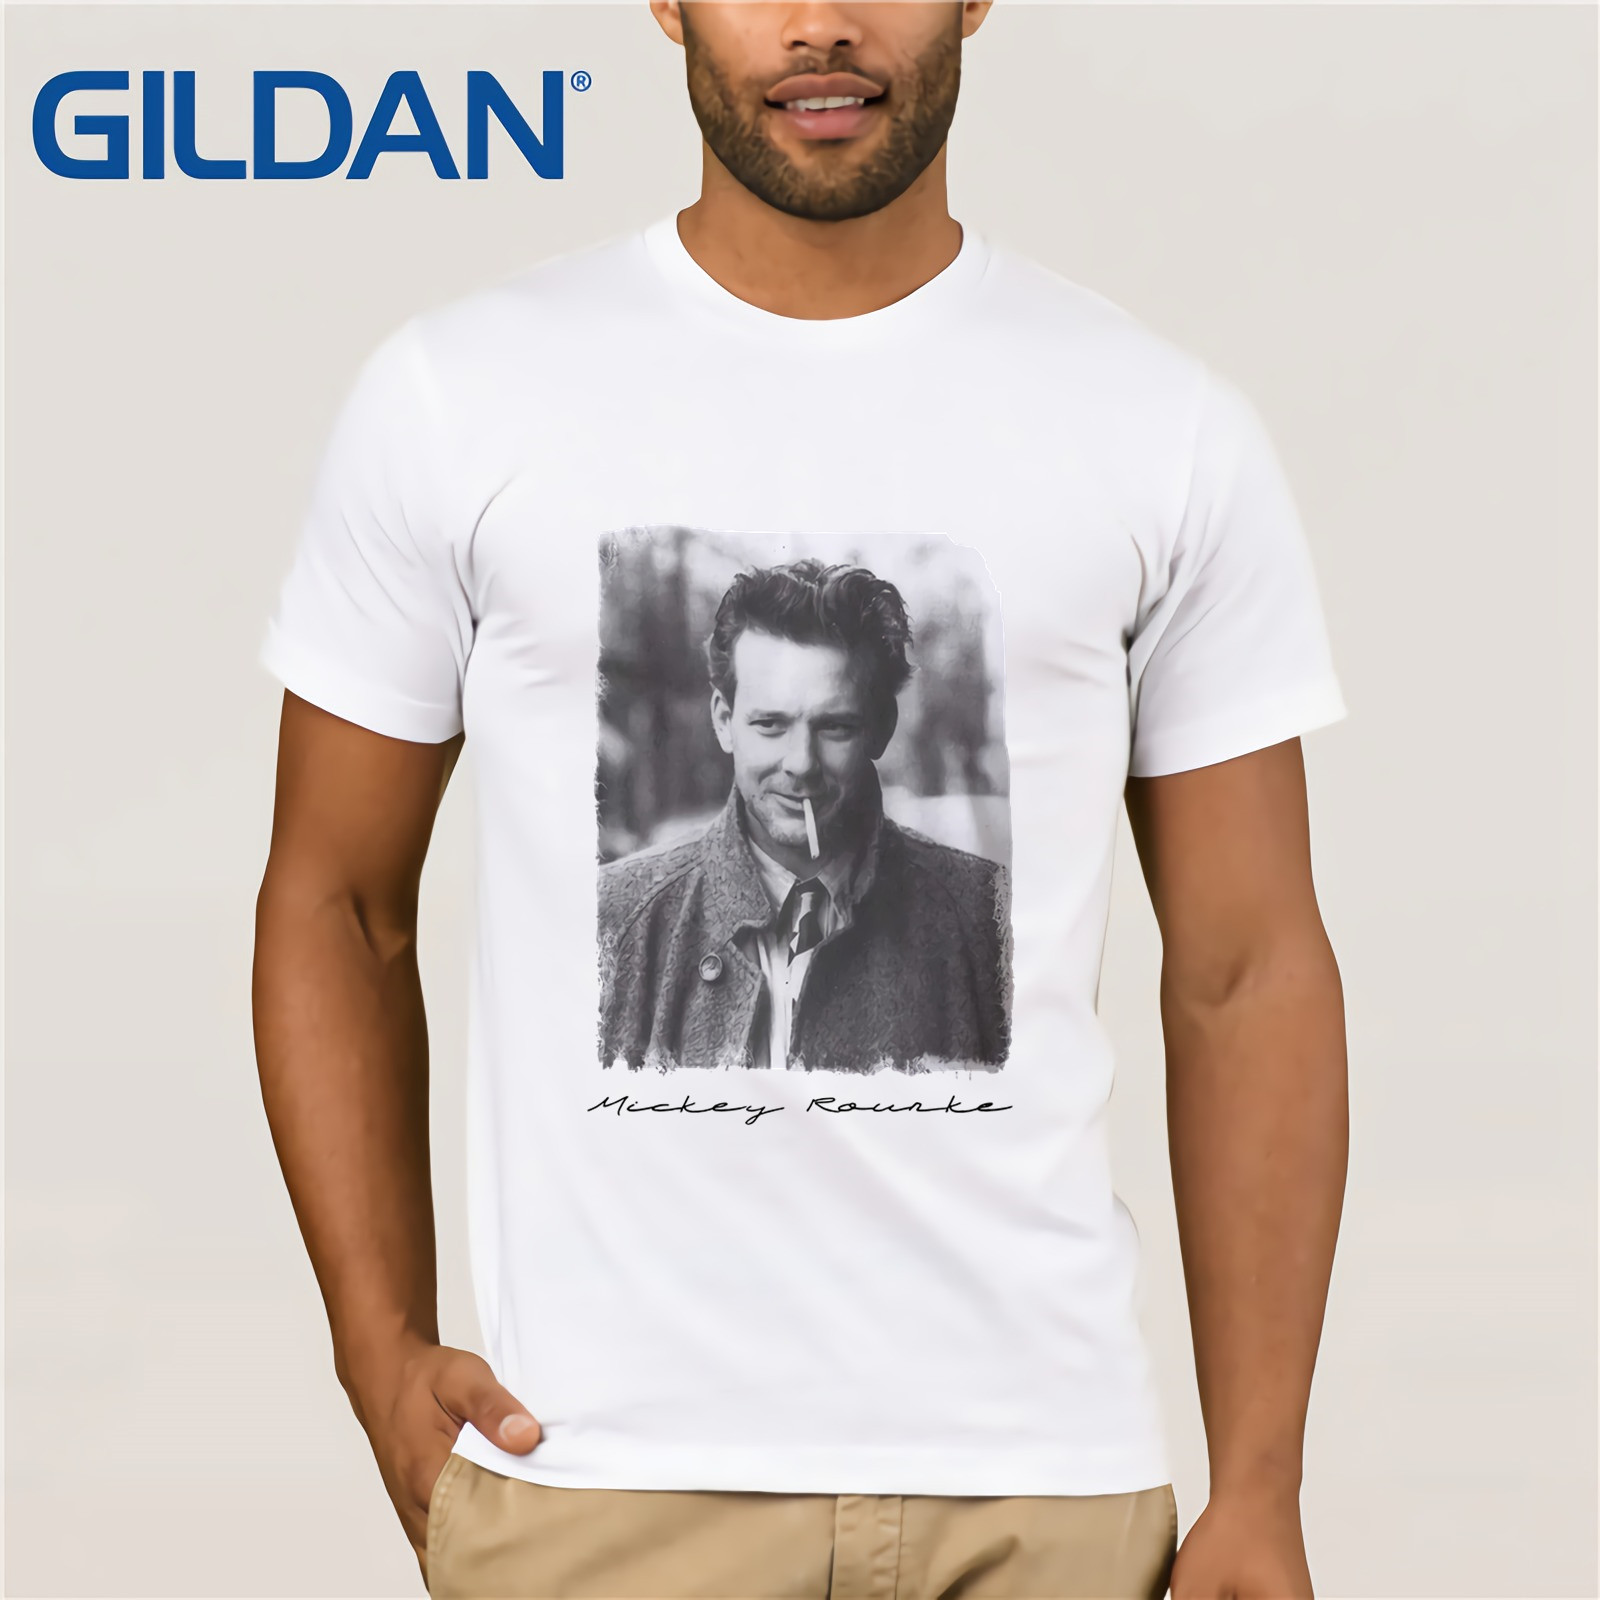 T-shirt Mickey Rourke, t-shirt Blanc pour Hommes, t-shirt Blanc pour Hommes, t-shirt Cadeau